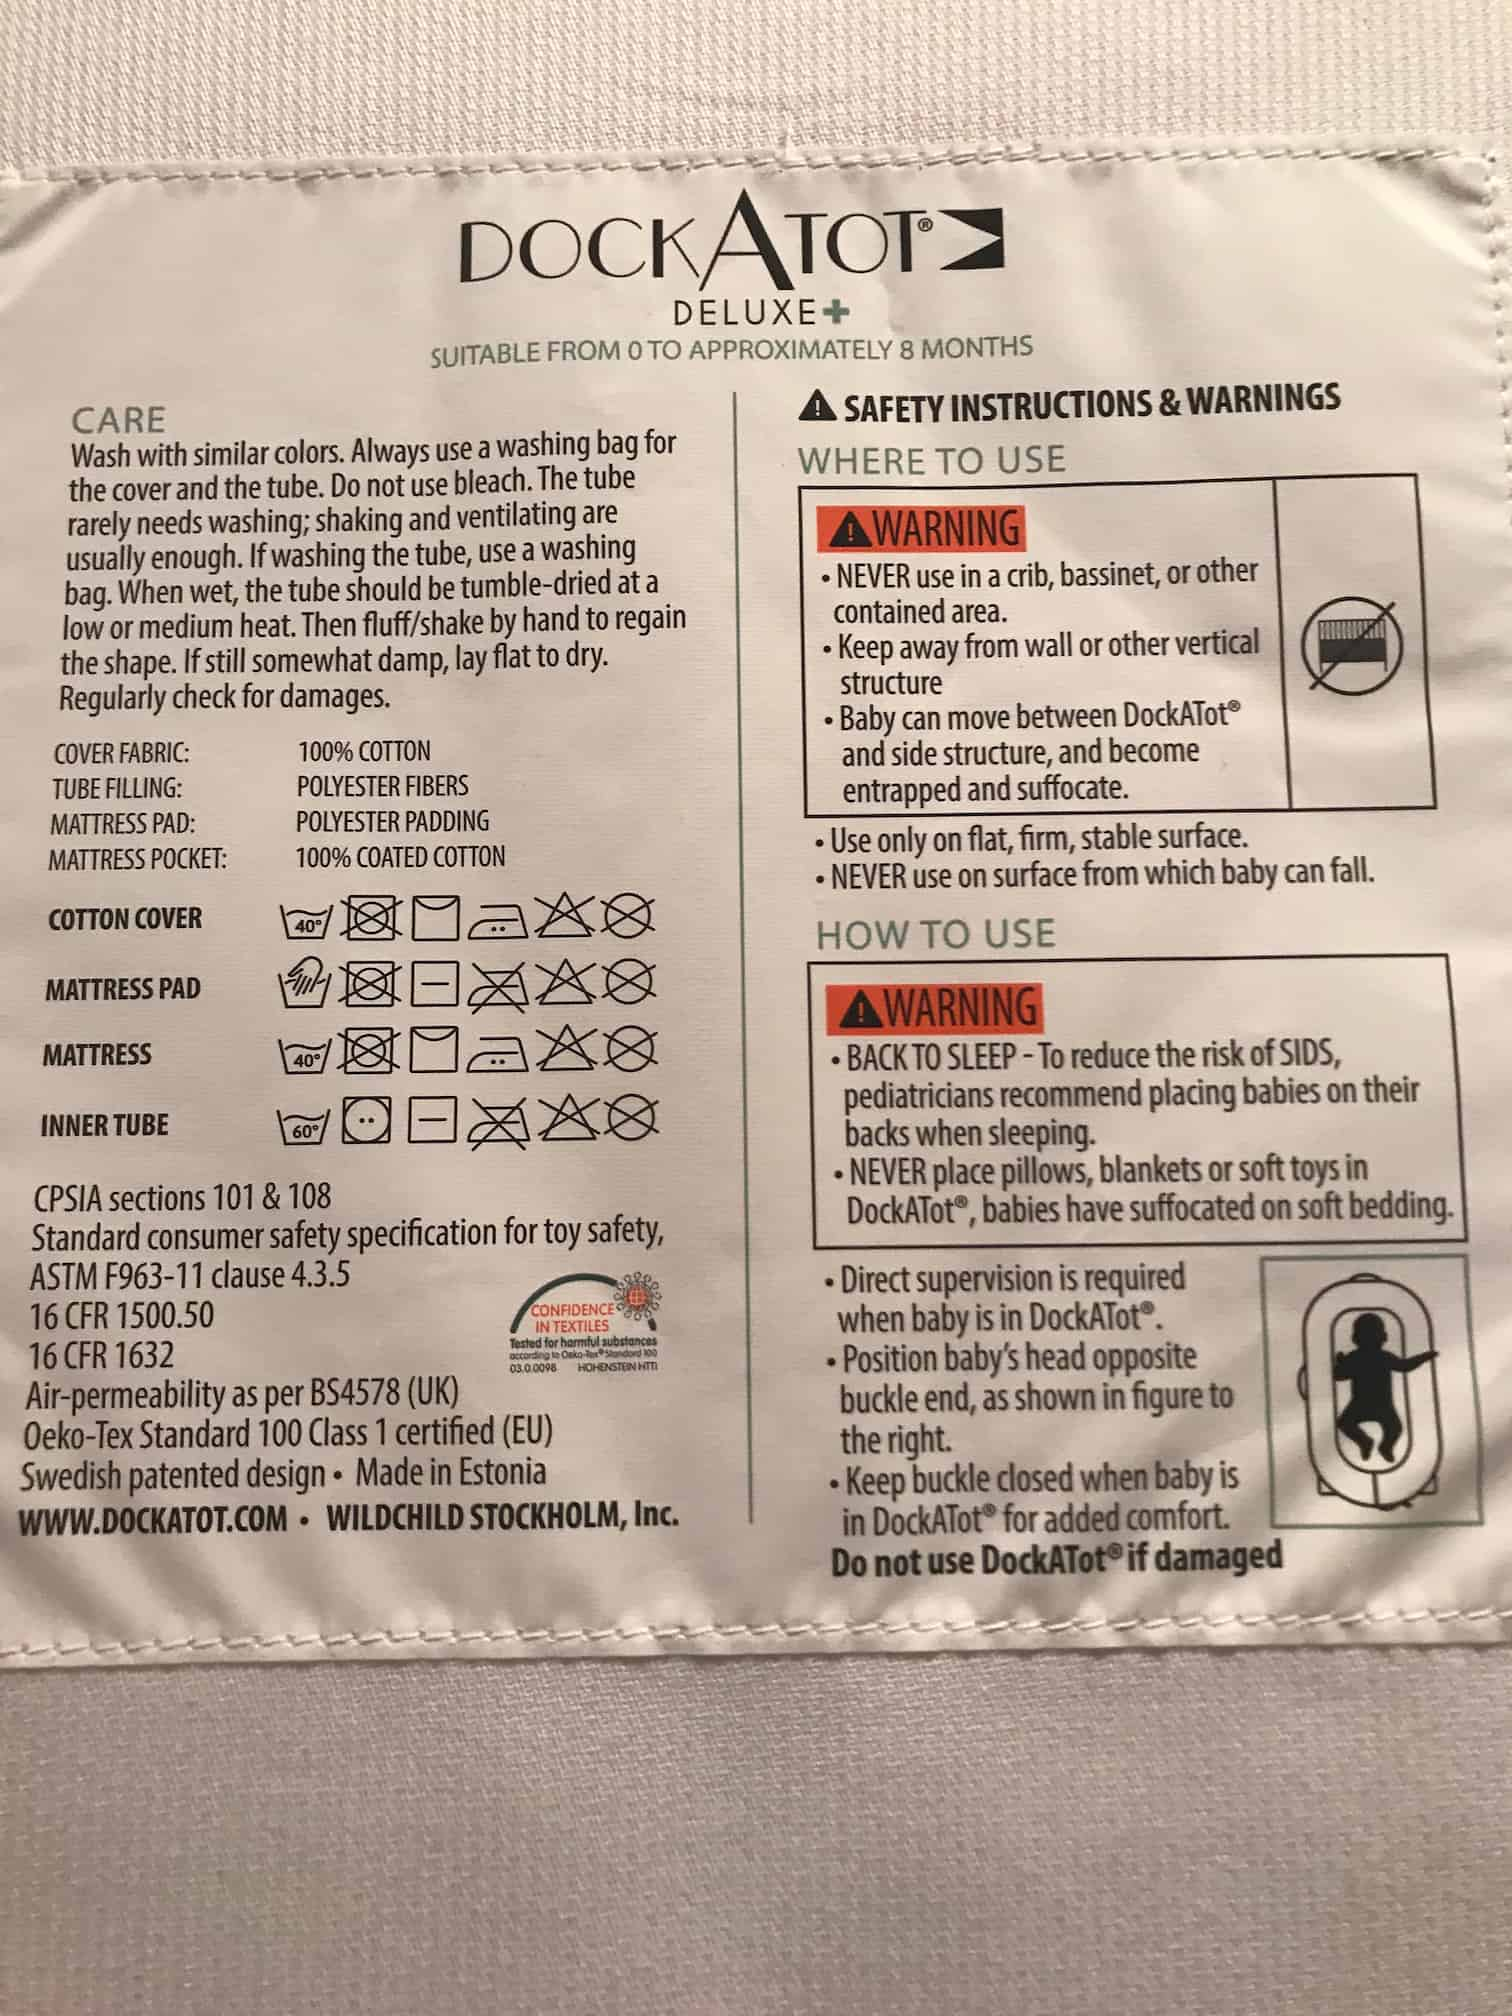 DockATot's usage and safety instructions are sewn to the back of the pillow.